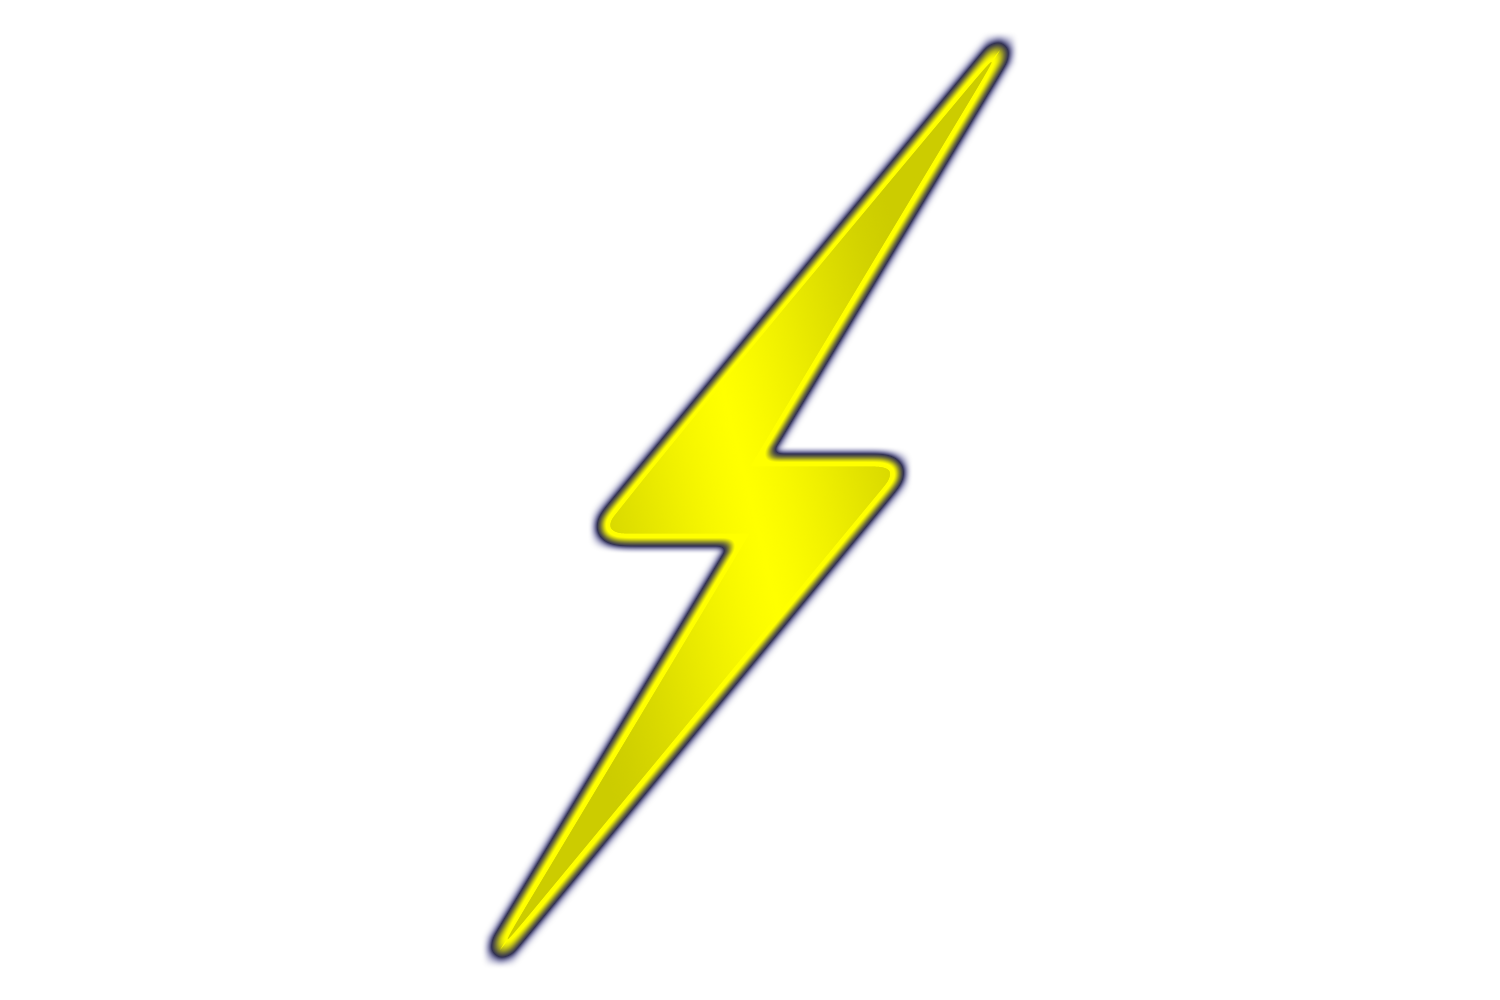 Lighting Bolt Png | Clipart Panda - Free Clipart Images